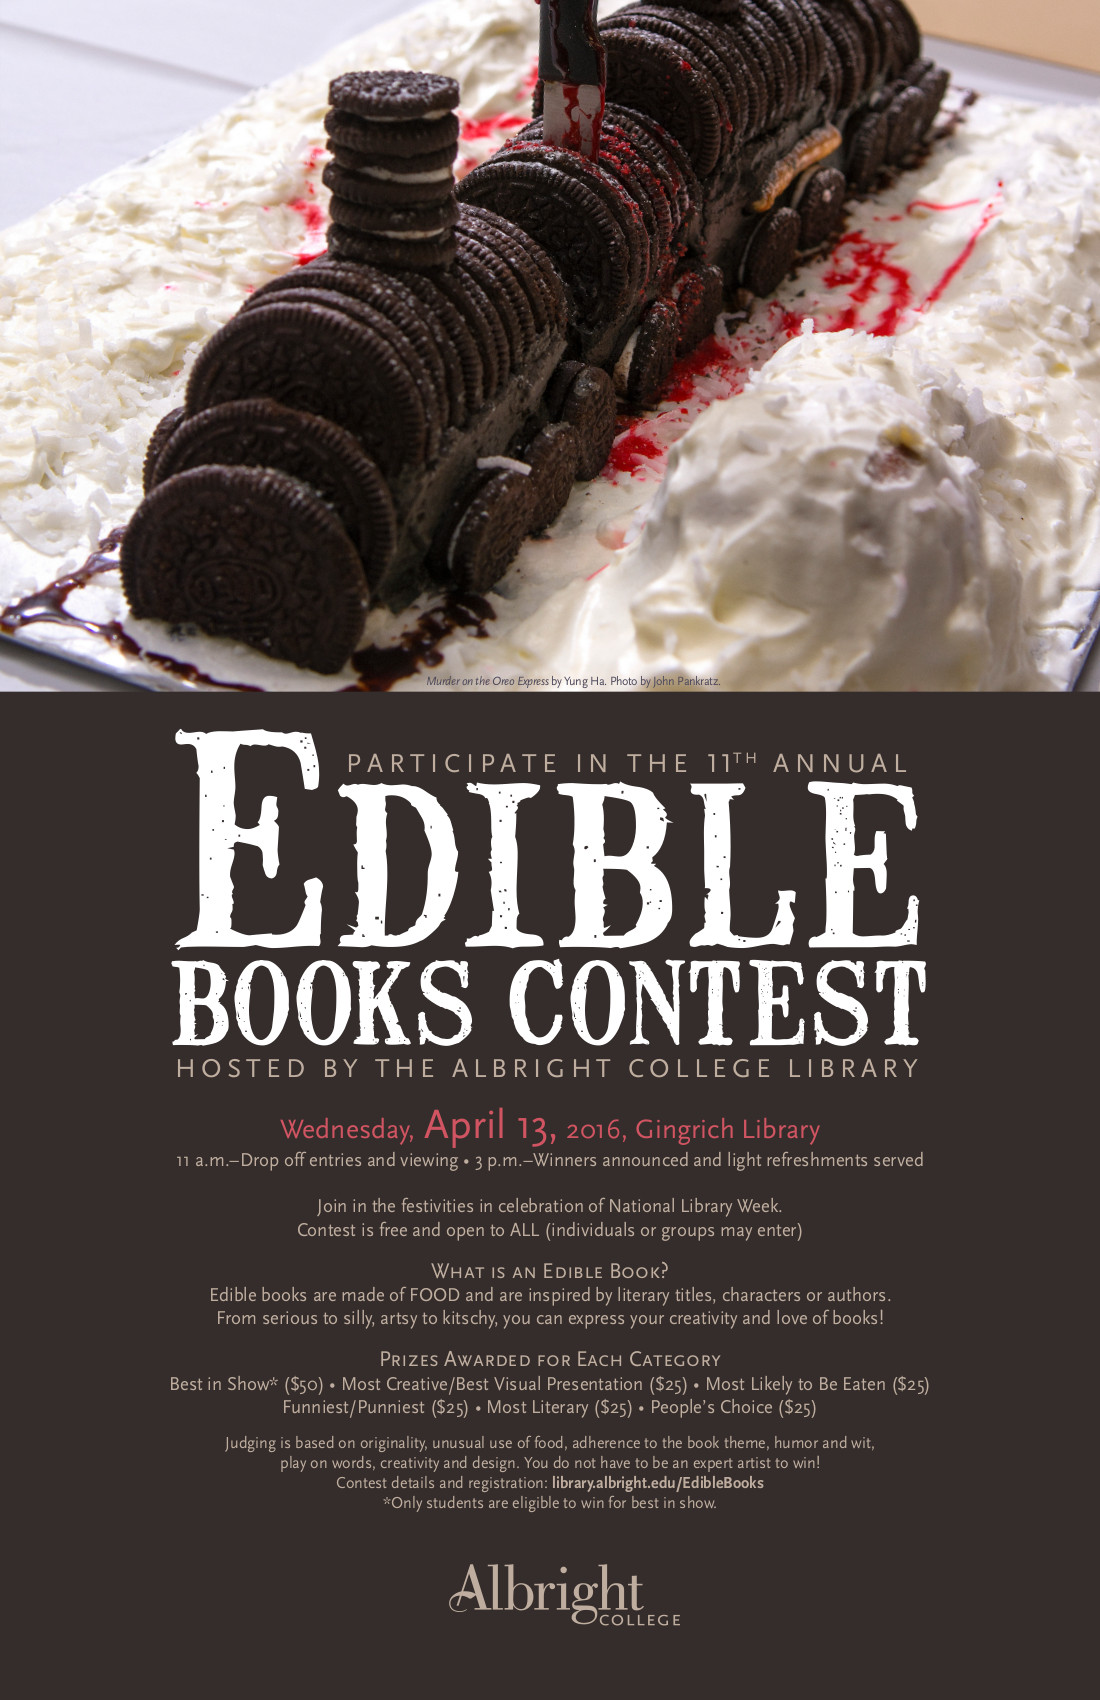 2016 Edible Books Edible Books Lion At Albright College